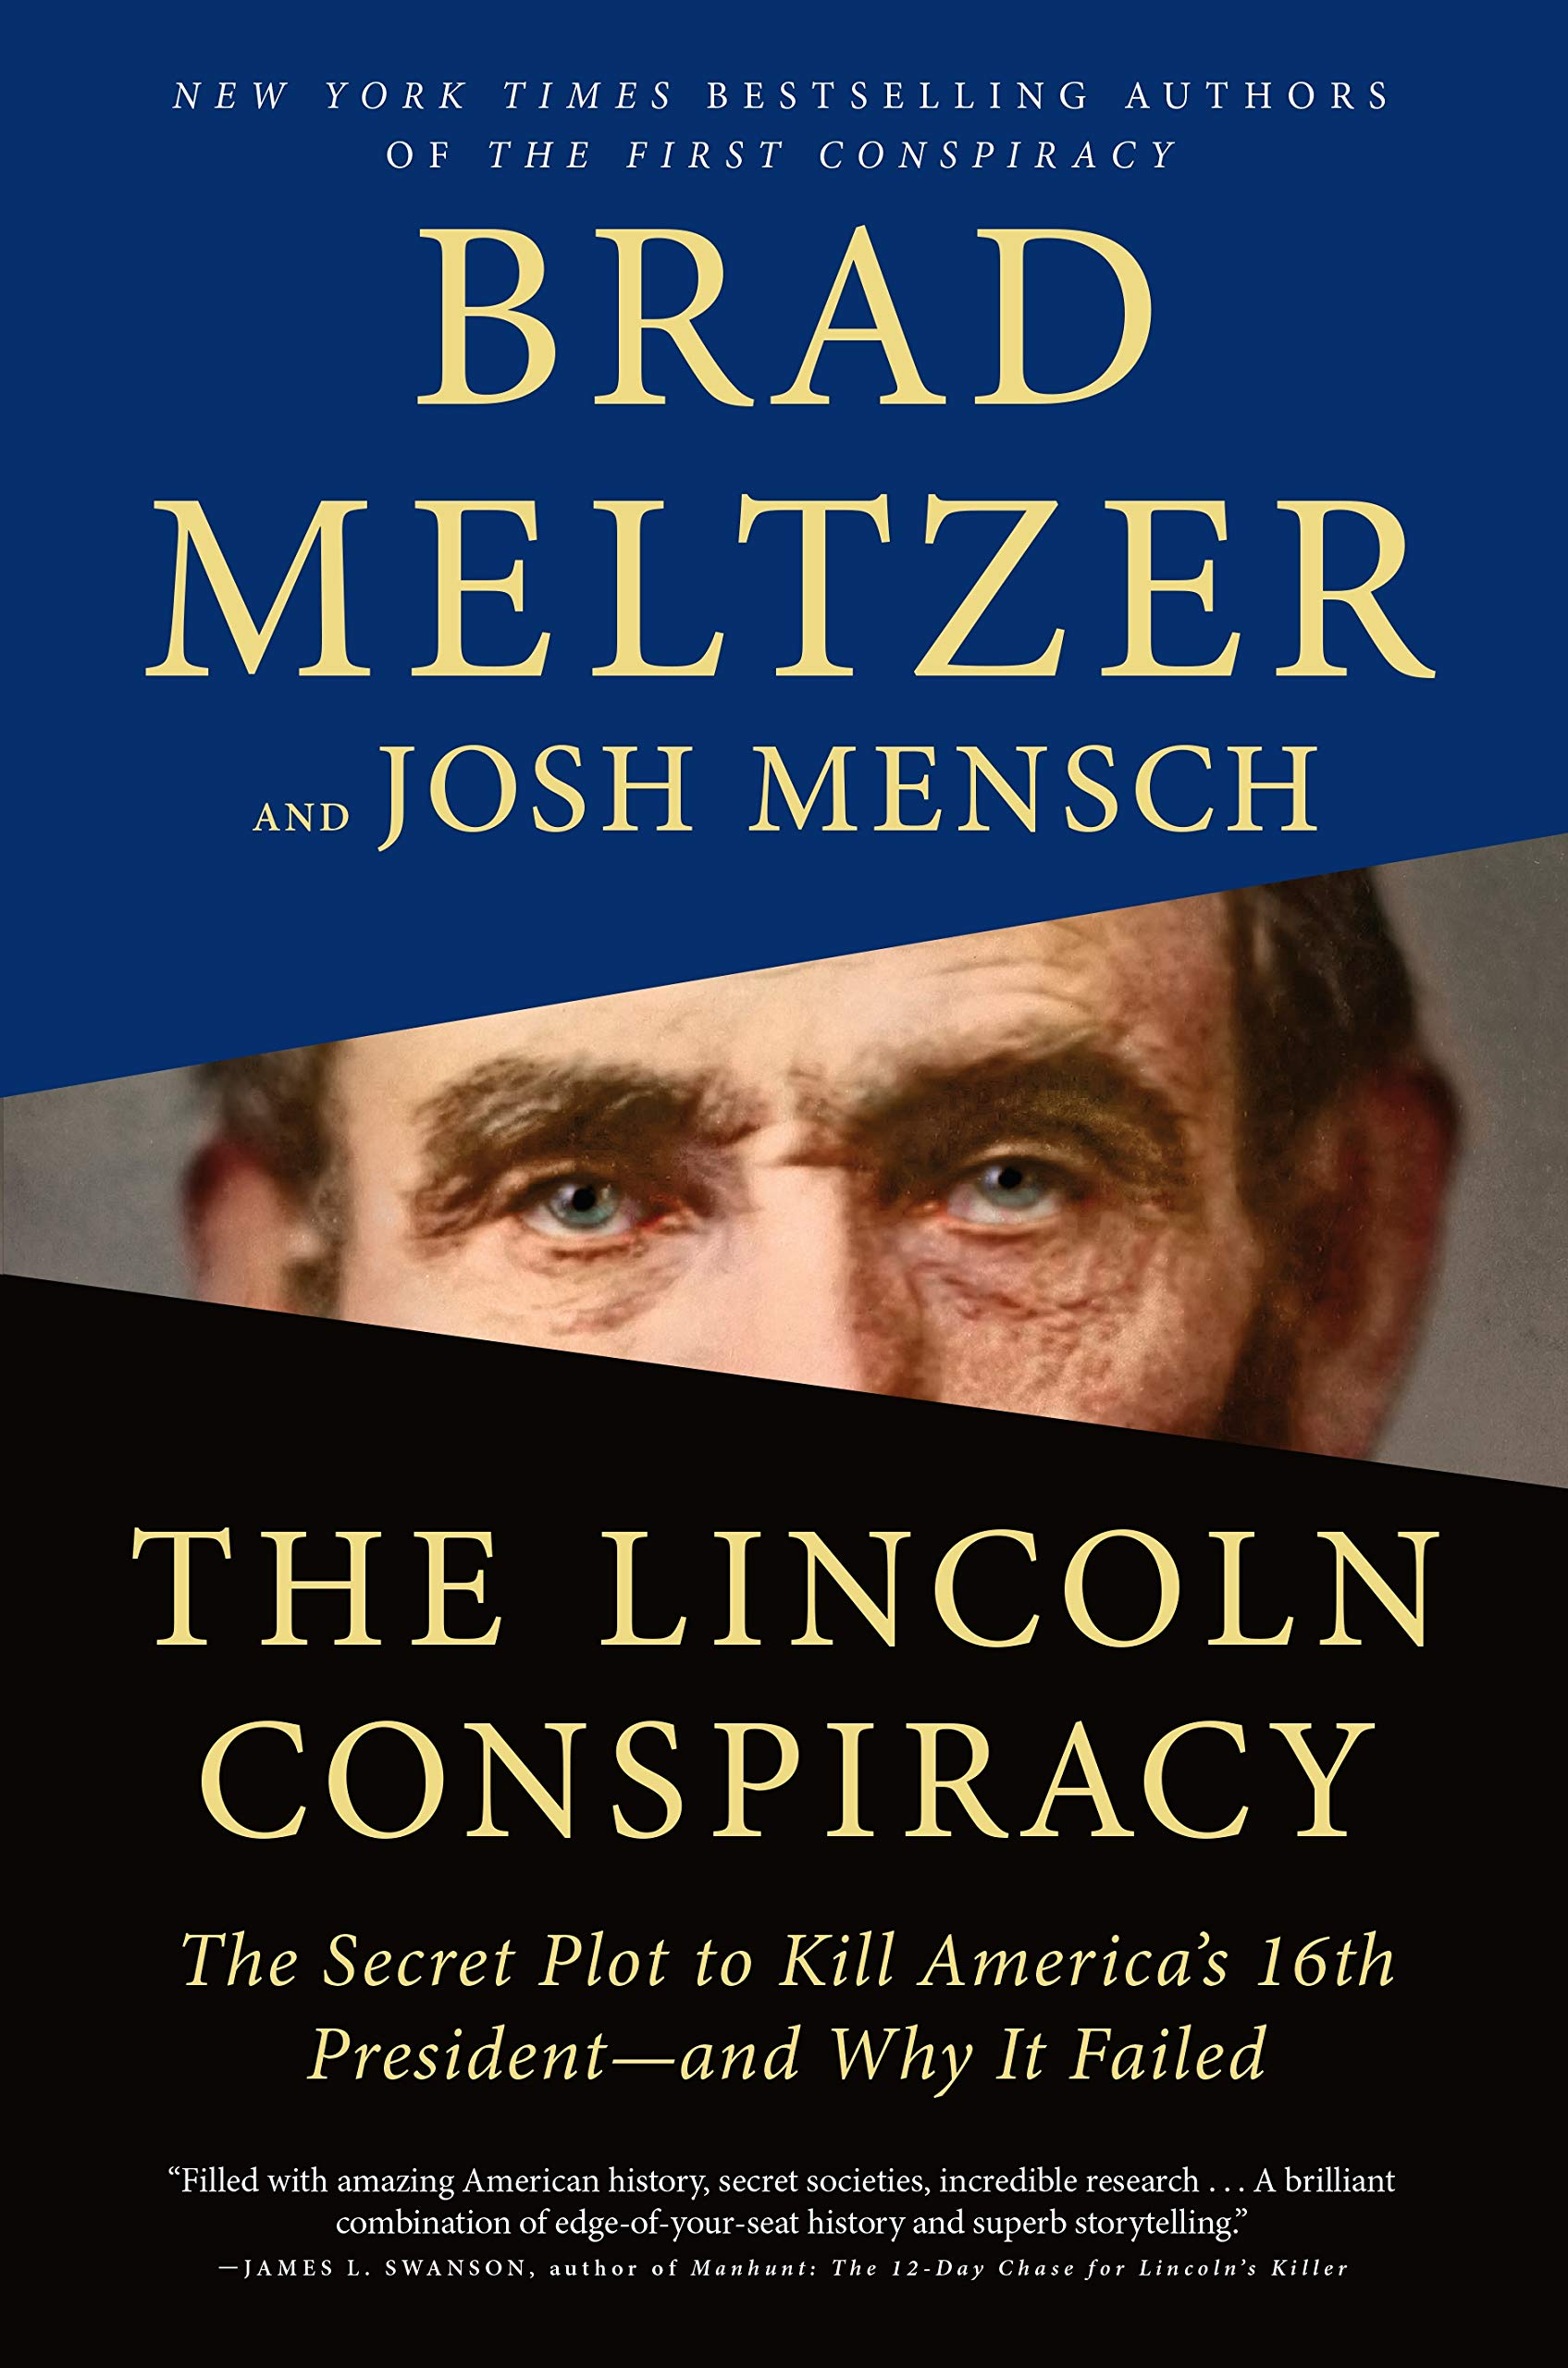 The Lincoln Conspiracy: The Secret Plot to Kill America's 16th President and Why It Failed